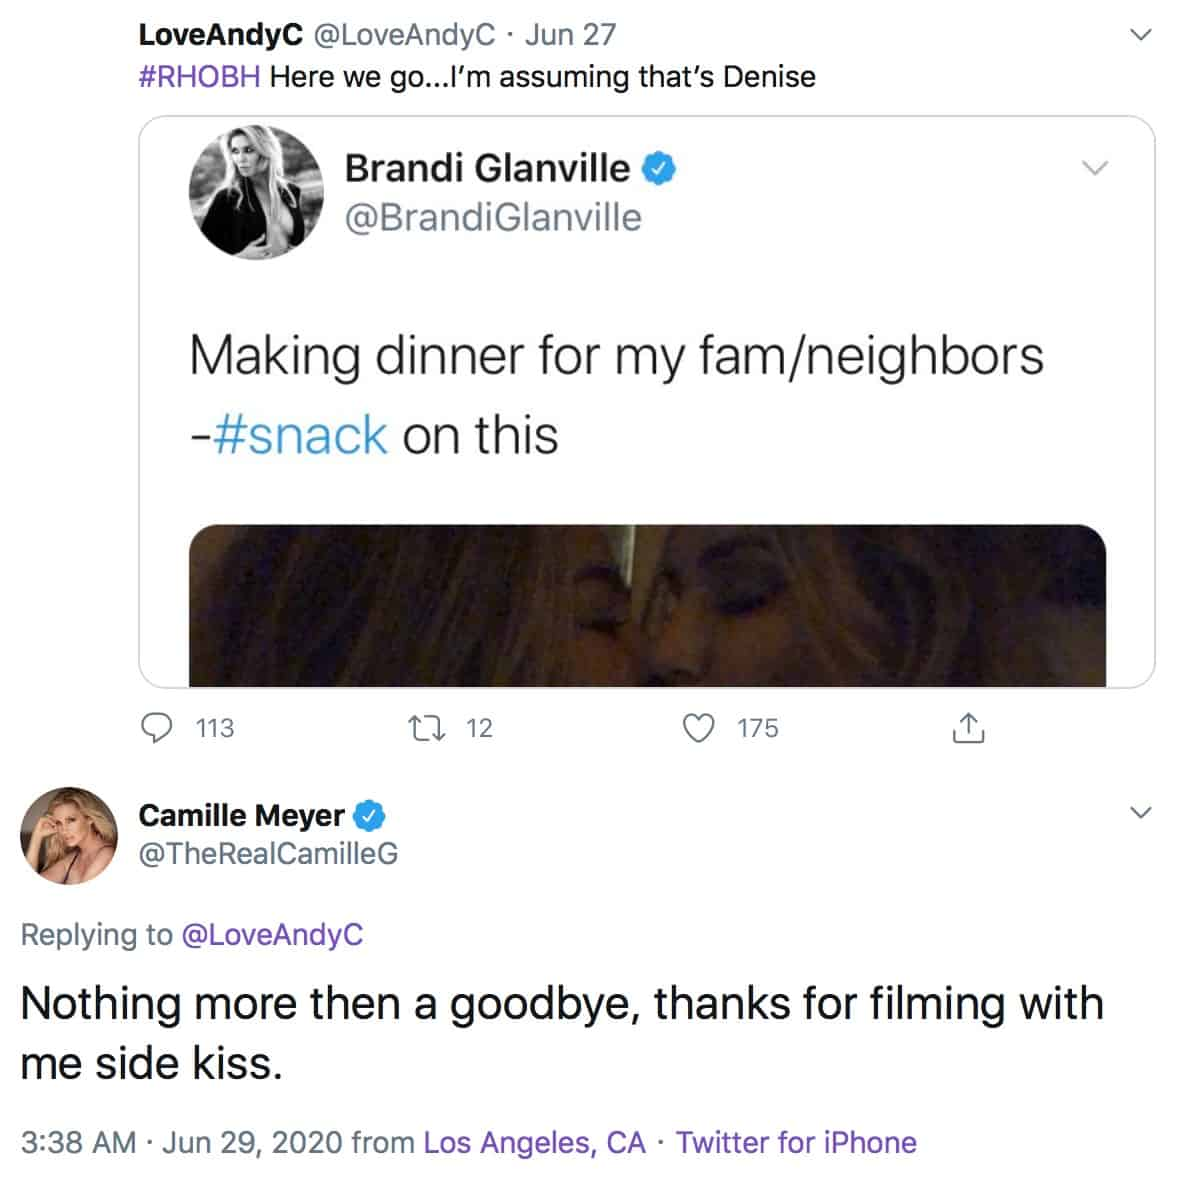 RHOBH Camille Grammer Suggests Brandi Glanville and Denise Richards Kiss Was Not Serious